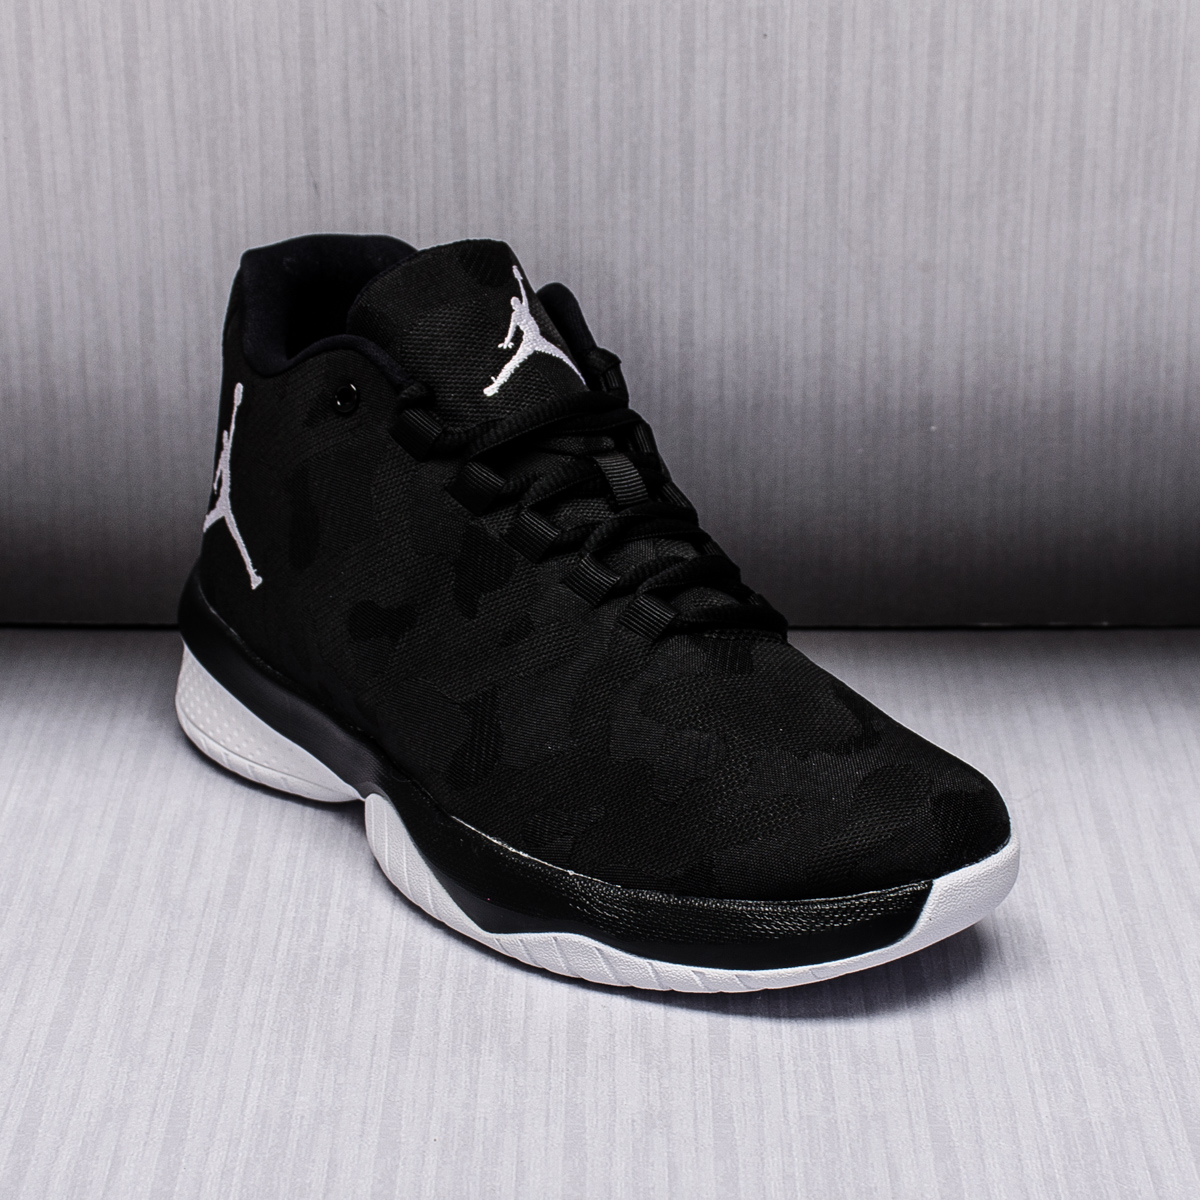 30d3cf647ed98 mens air jordan b.fly basketball shoes